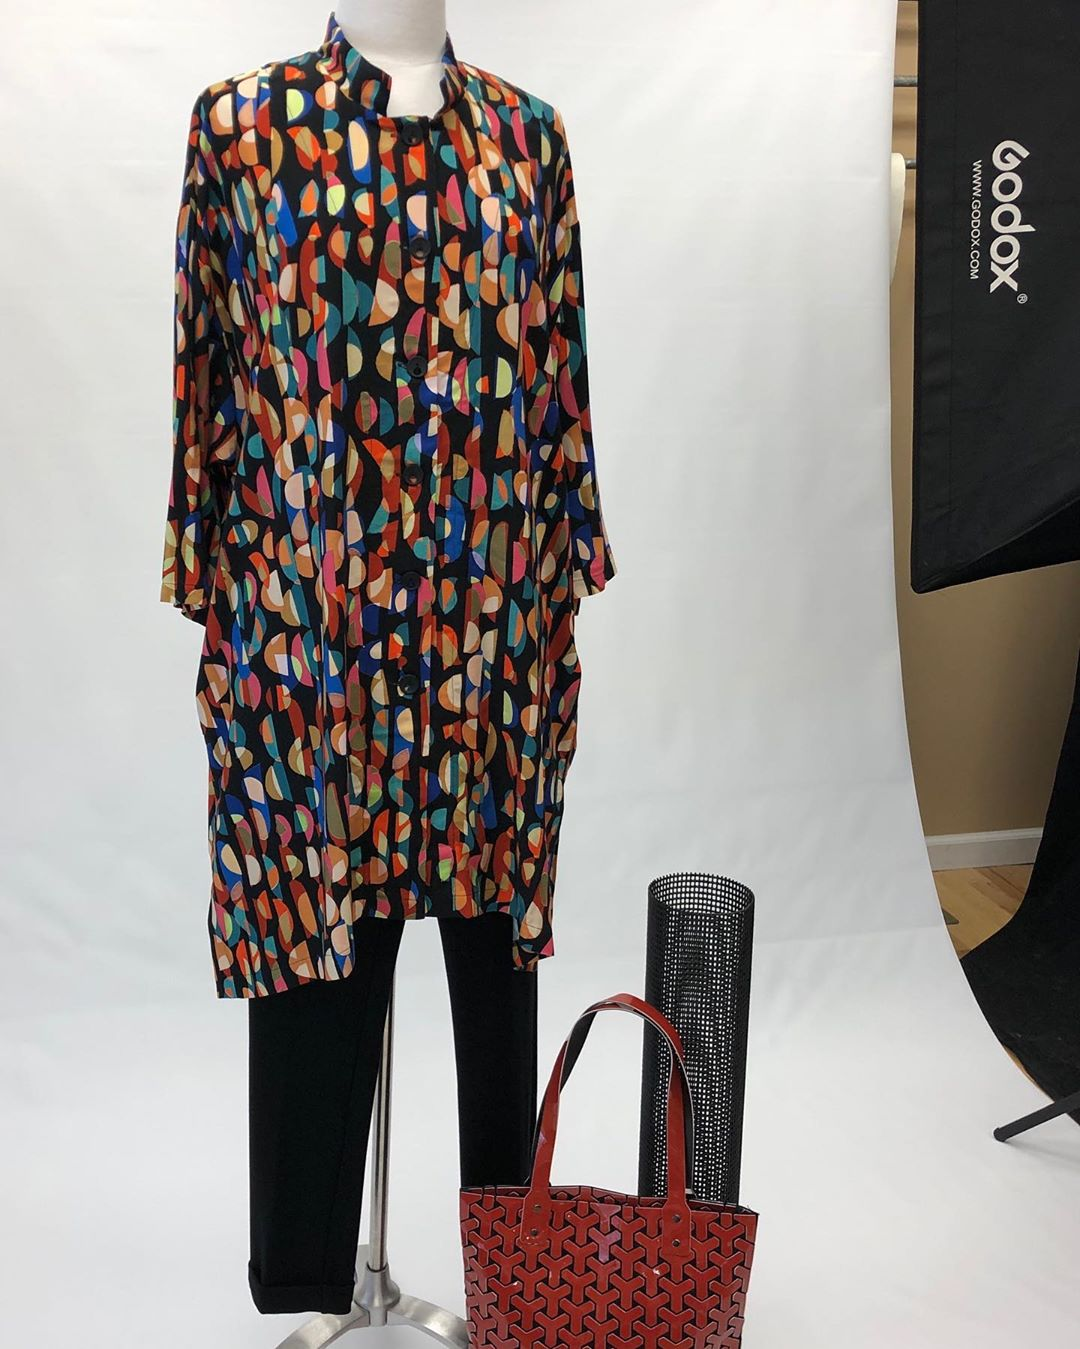 Here's a sneak peak from our fall/winter collection photo shoot @silverbirchstudio Come visit us in the store this weekend and try on some of these beauties @grovearcade @caravans_asheville